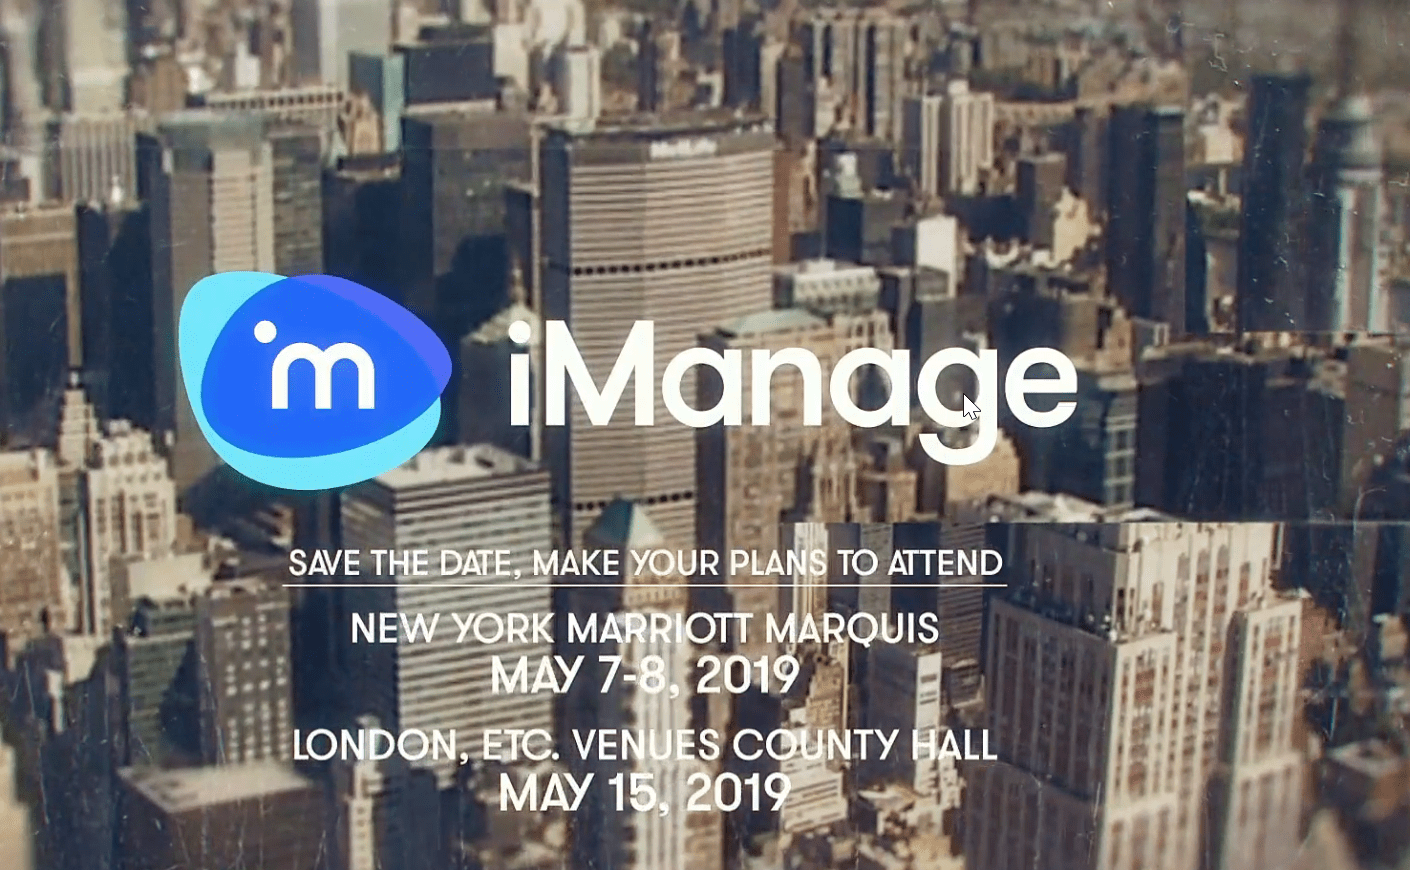 iManage_ConnectLive2019_London_Bundledocs_Electronic_Document_Bundling_Software.png